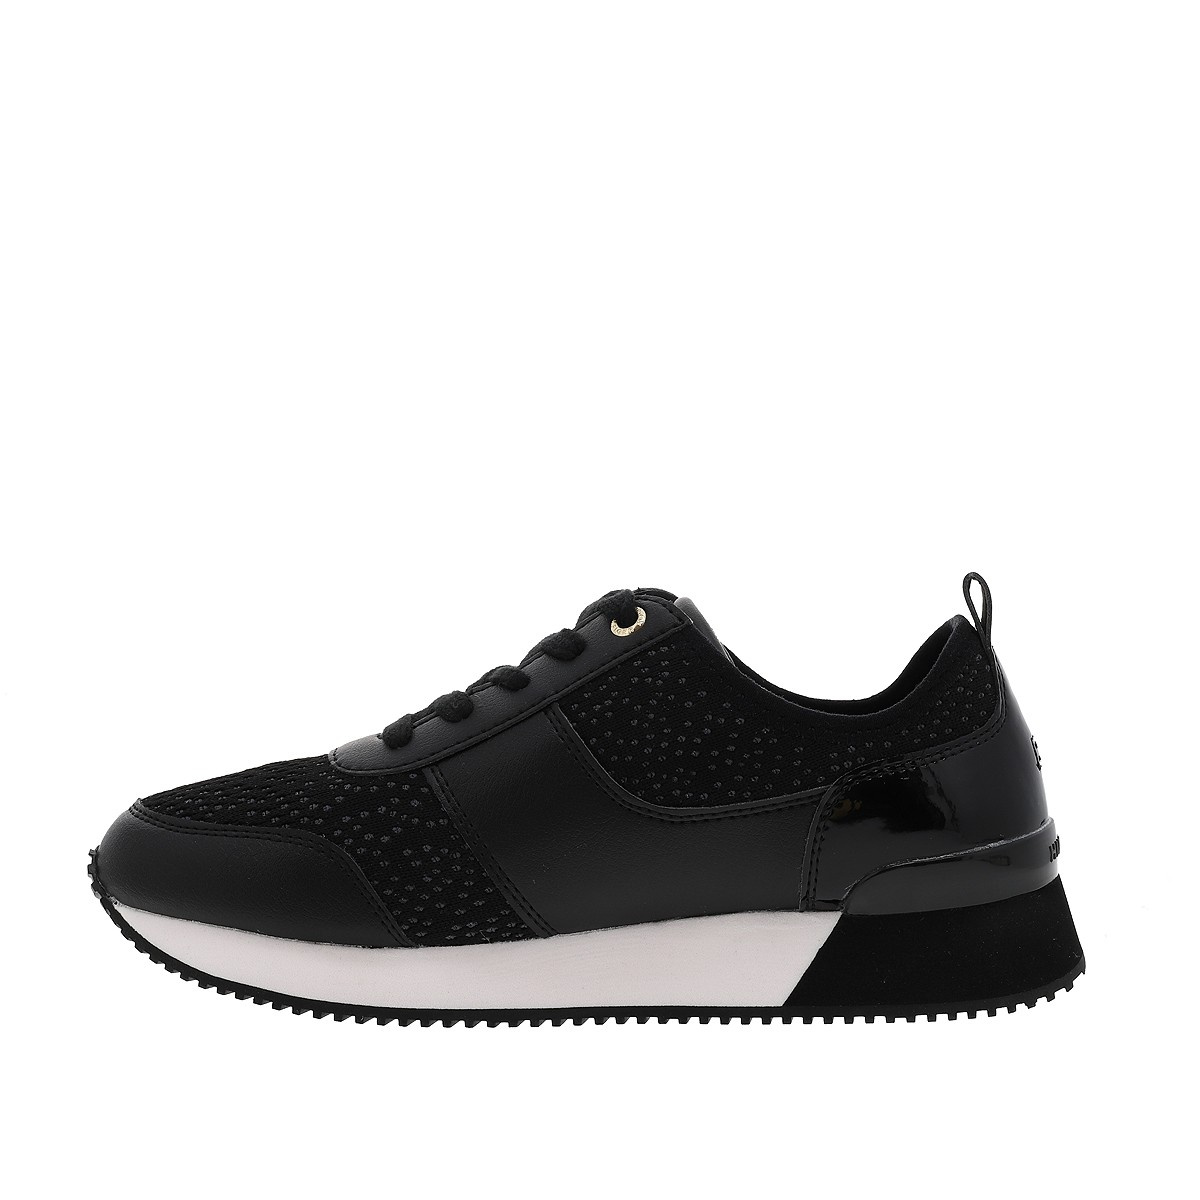 TOMMY JEANS Baskets CITY ICONIC femme noir